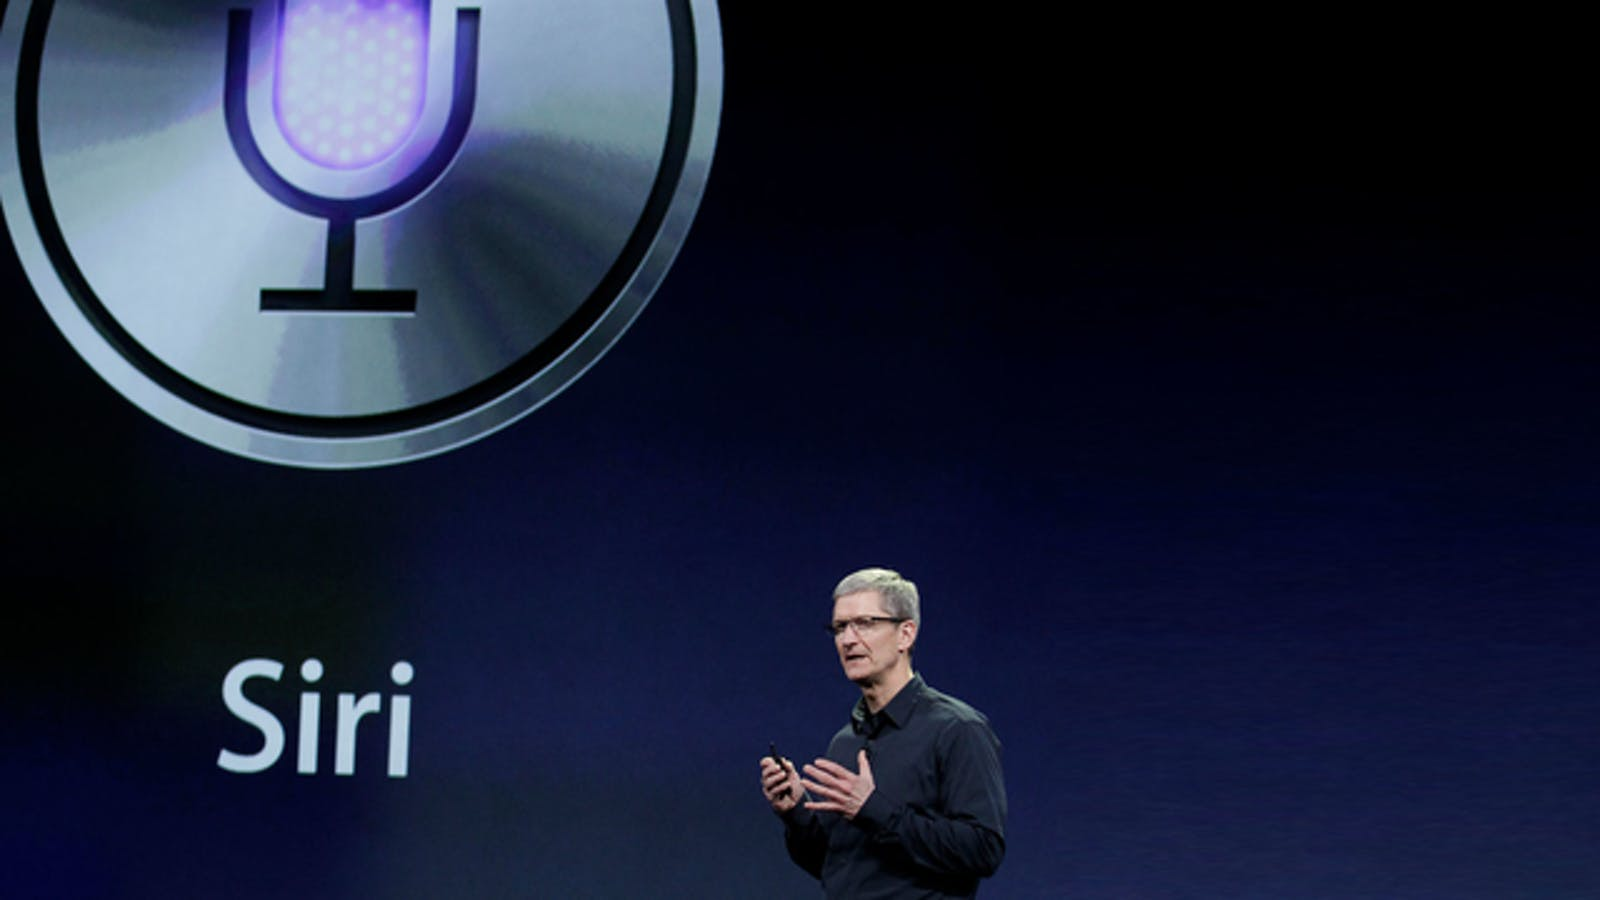 Apple CEO Tim Cook at an event in 2012. Photo by AP.